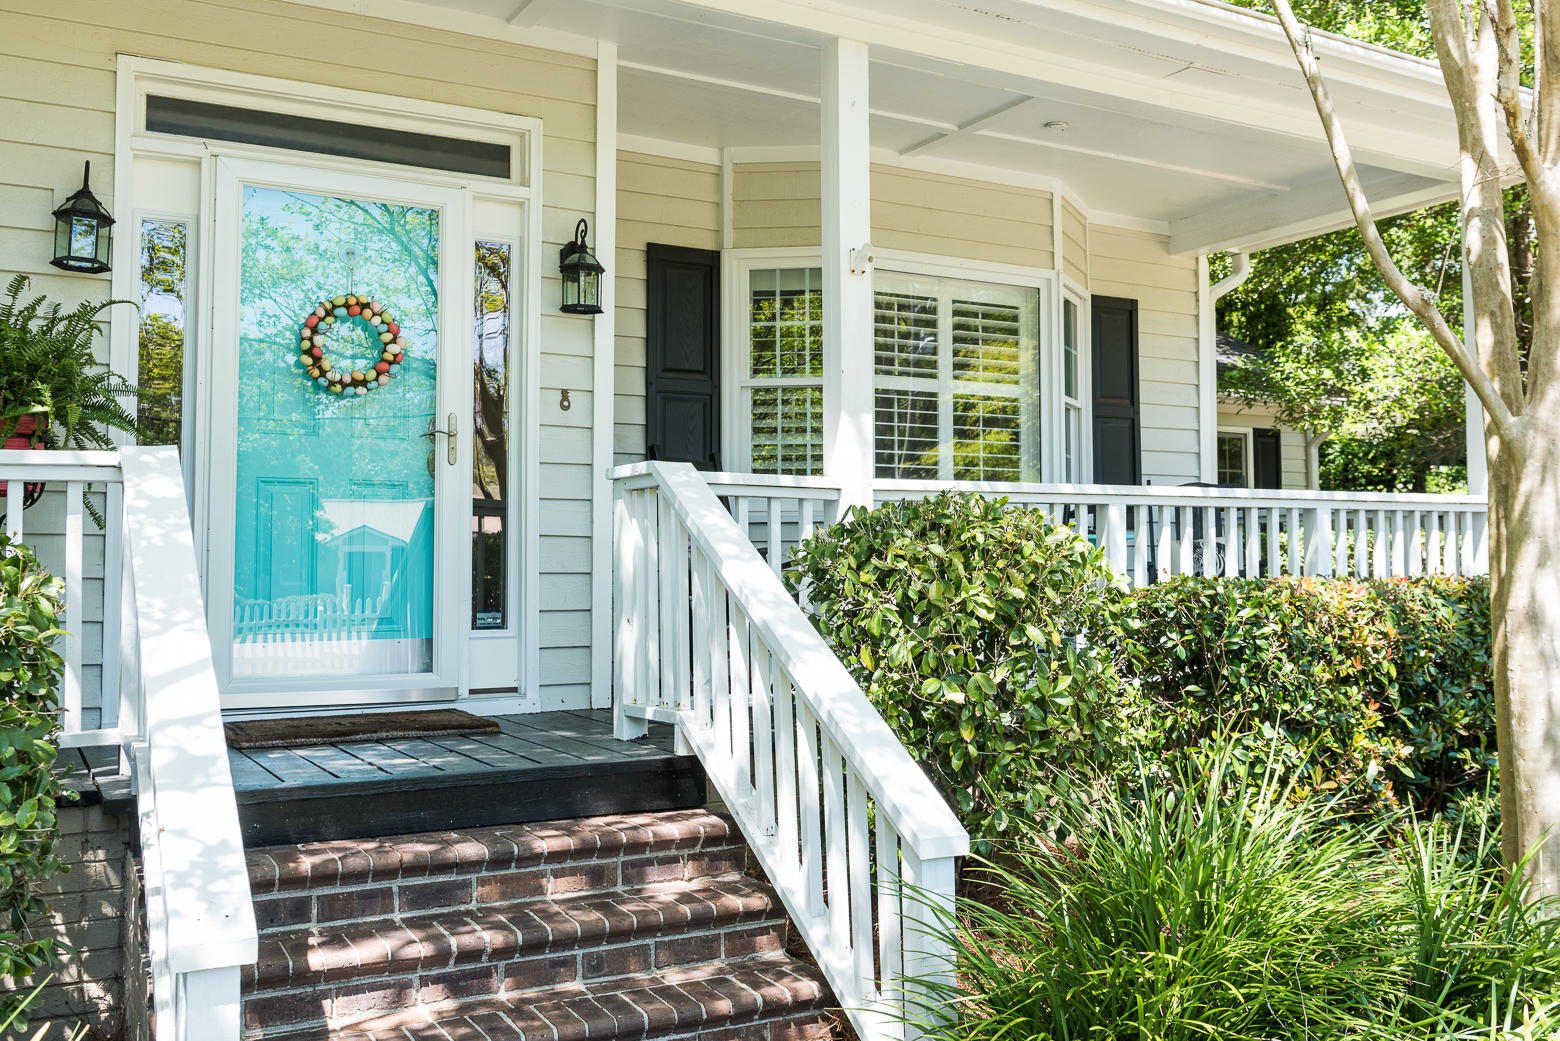 Home for sale 1016 Lansing Drive, The Groves, Mt. Pleasant, SC